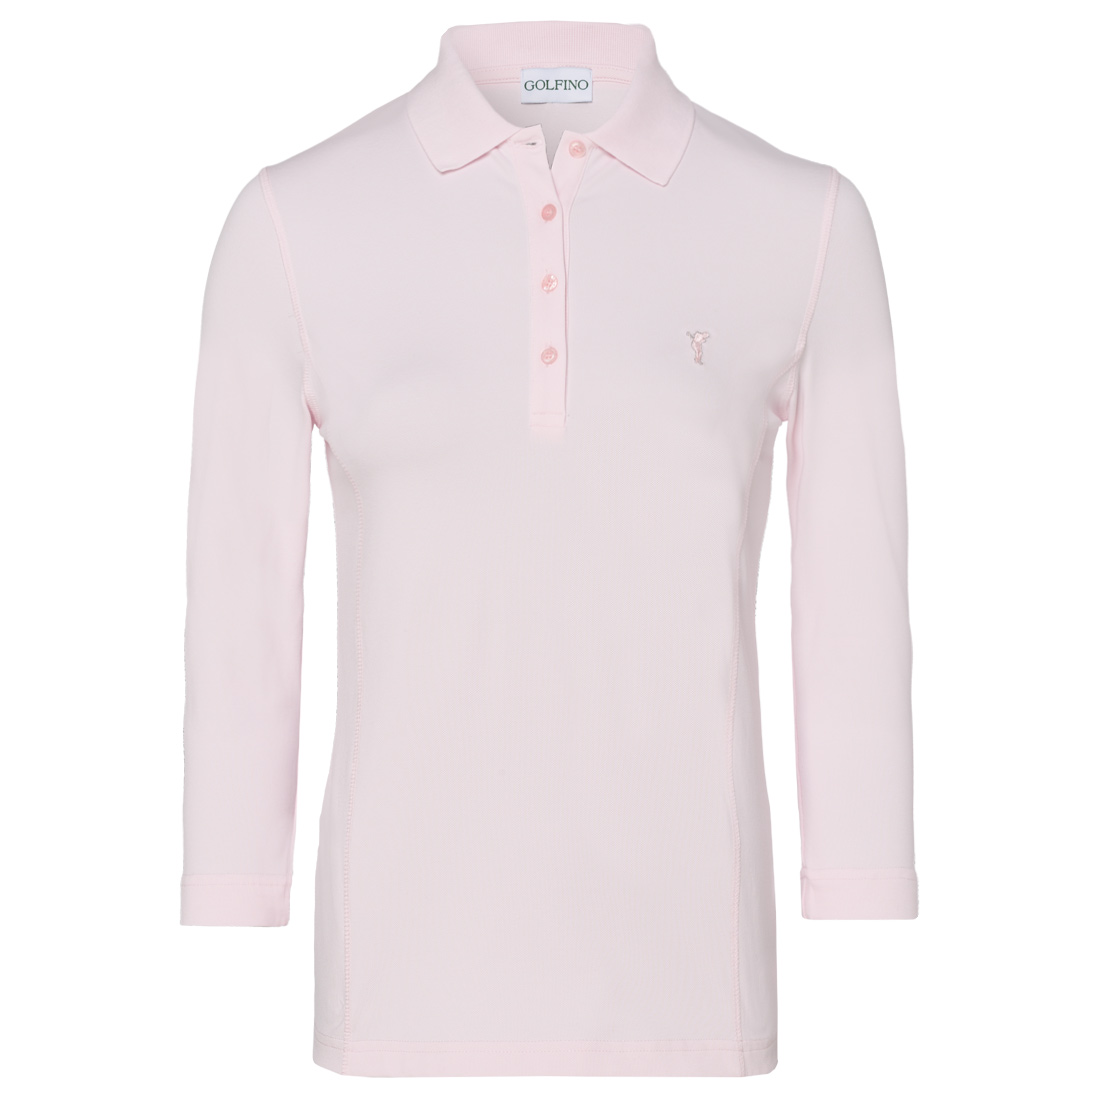 Damen Polo mit 3/4-Arm in Slim Fit